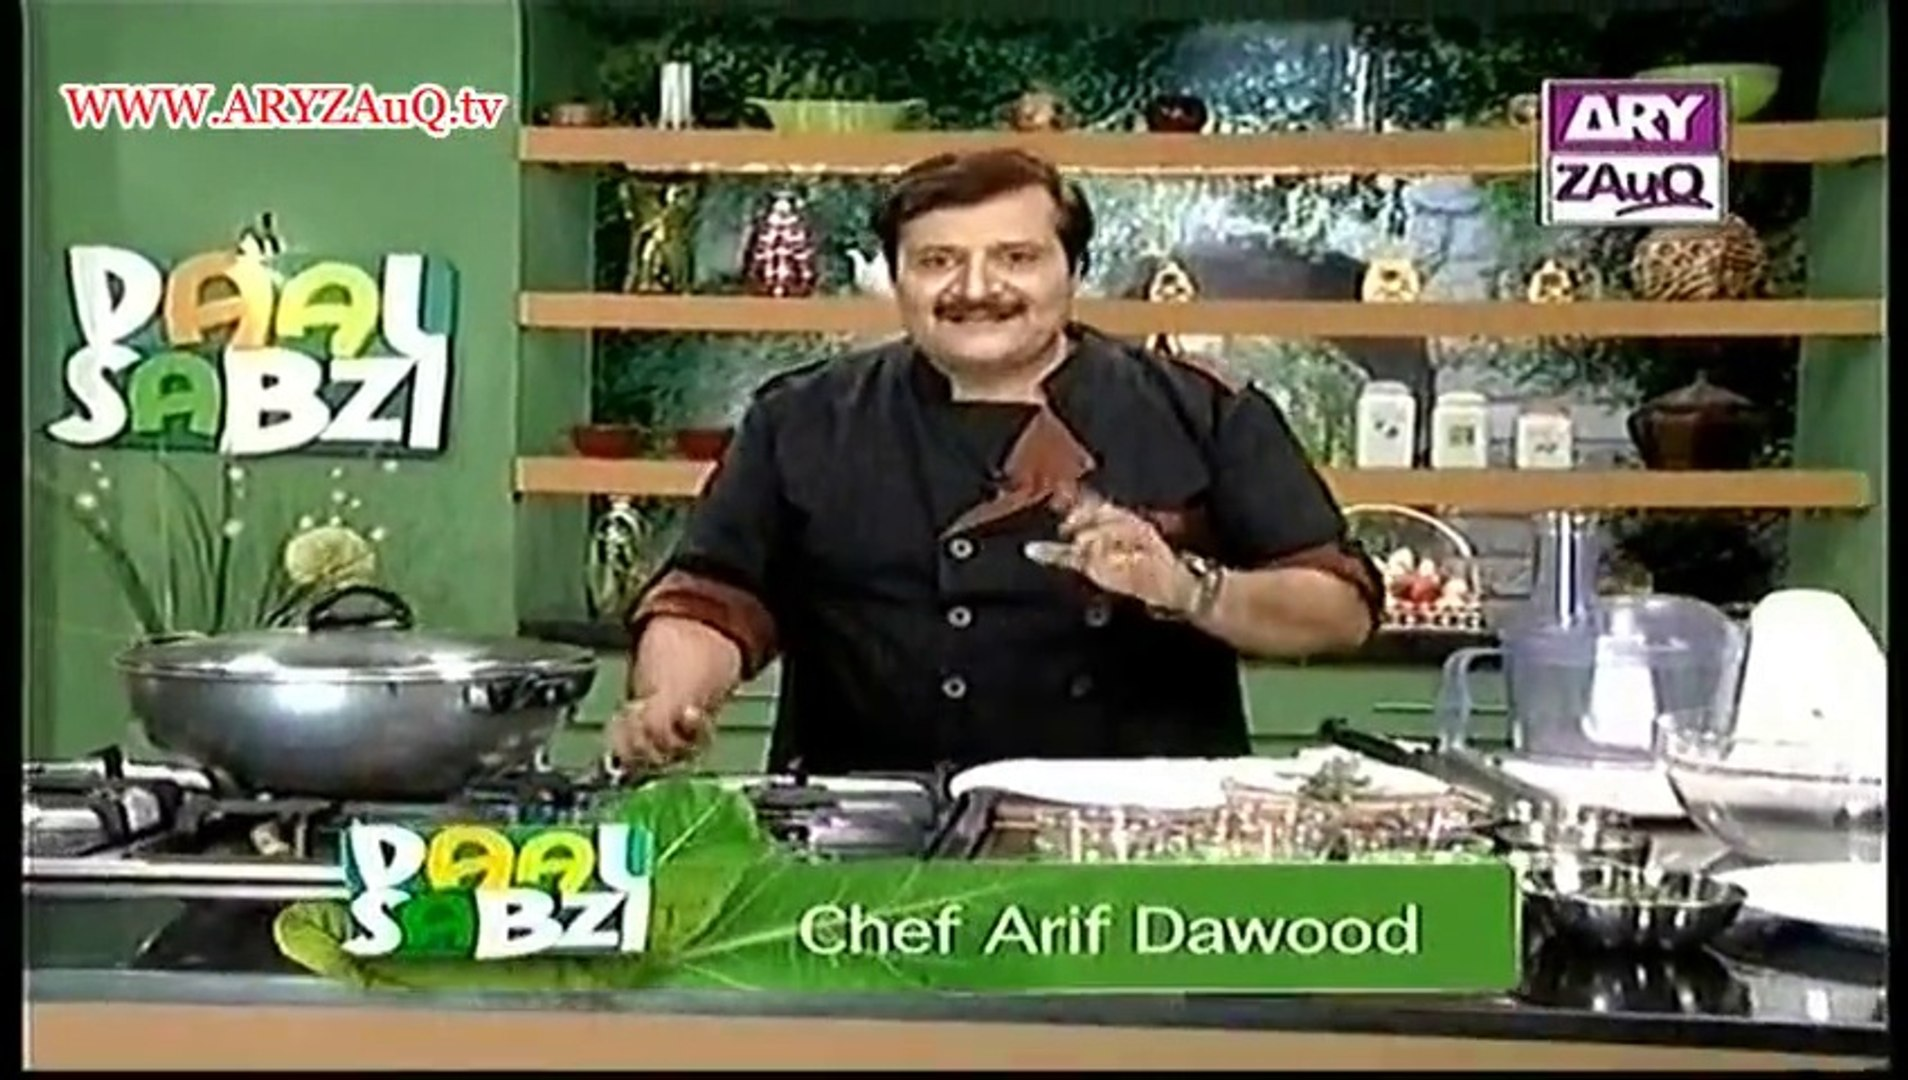 Ary Zauq Cookbook Ebook Download